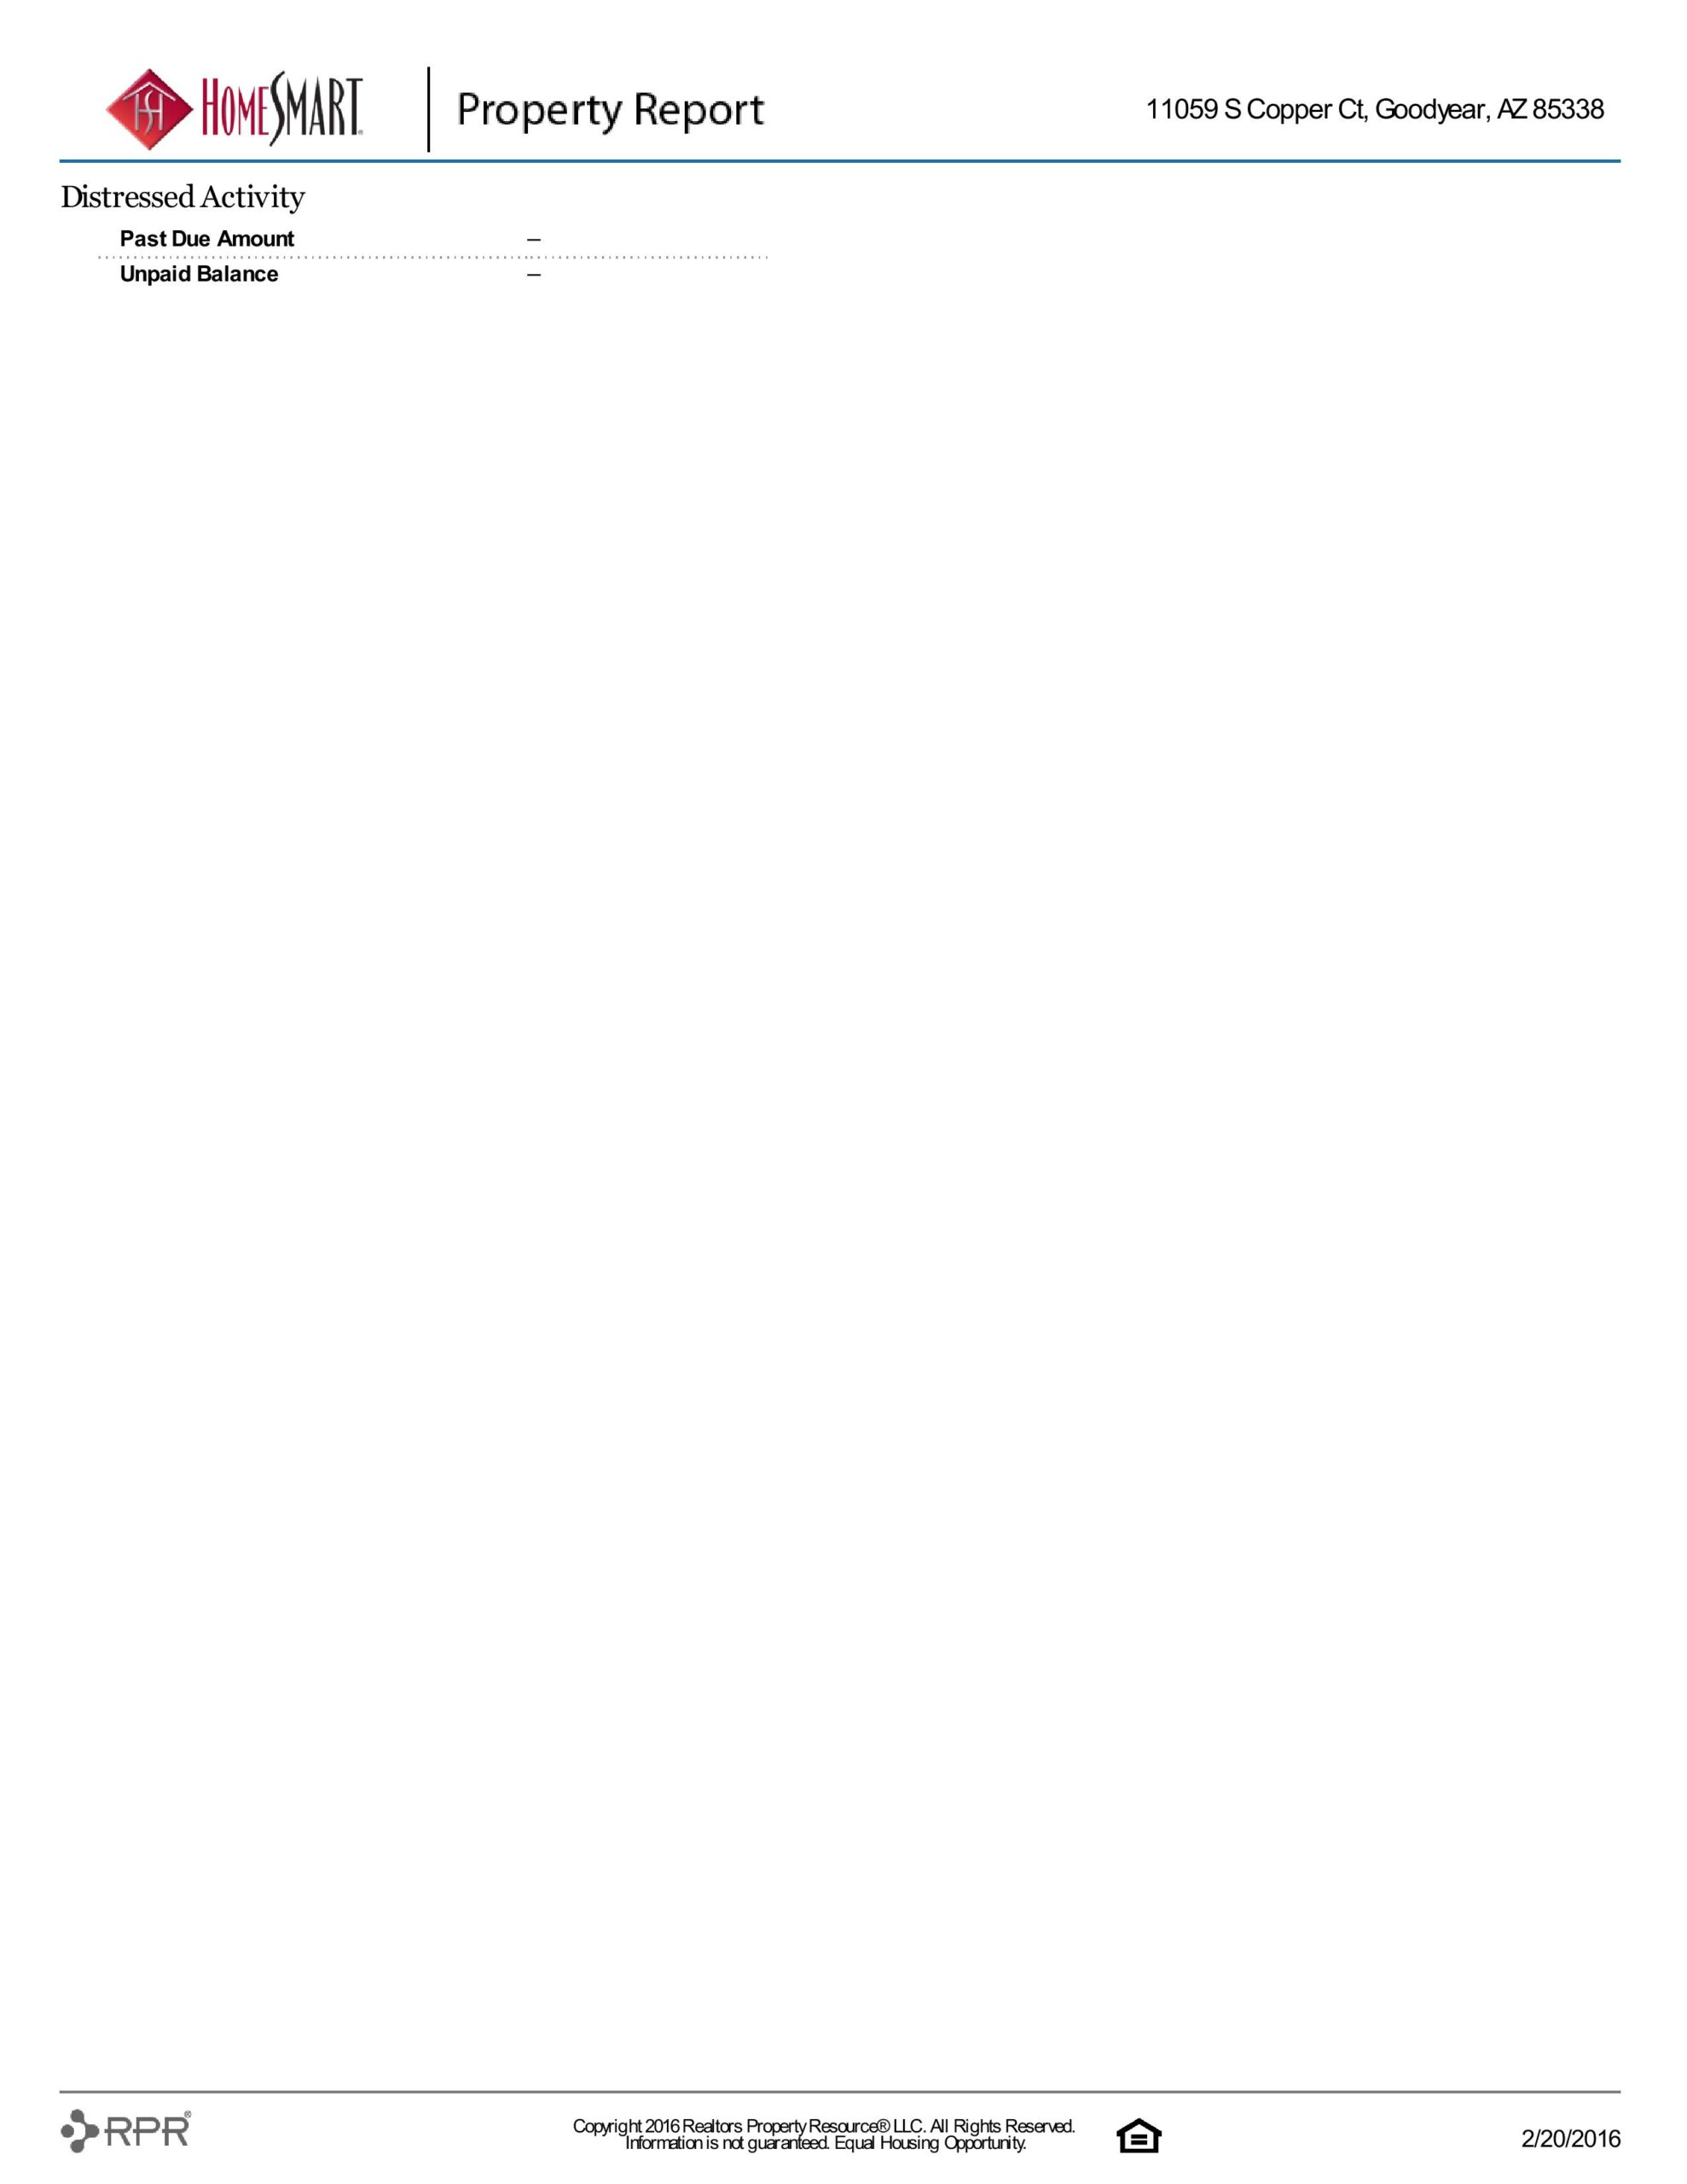 11059 S COPPER CT PROPERTY REPORT-page-014